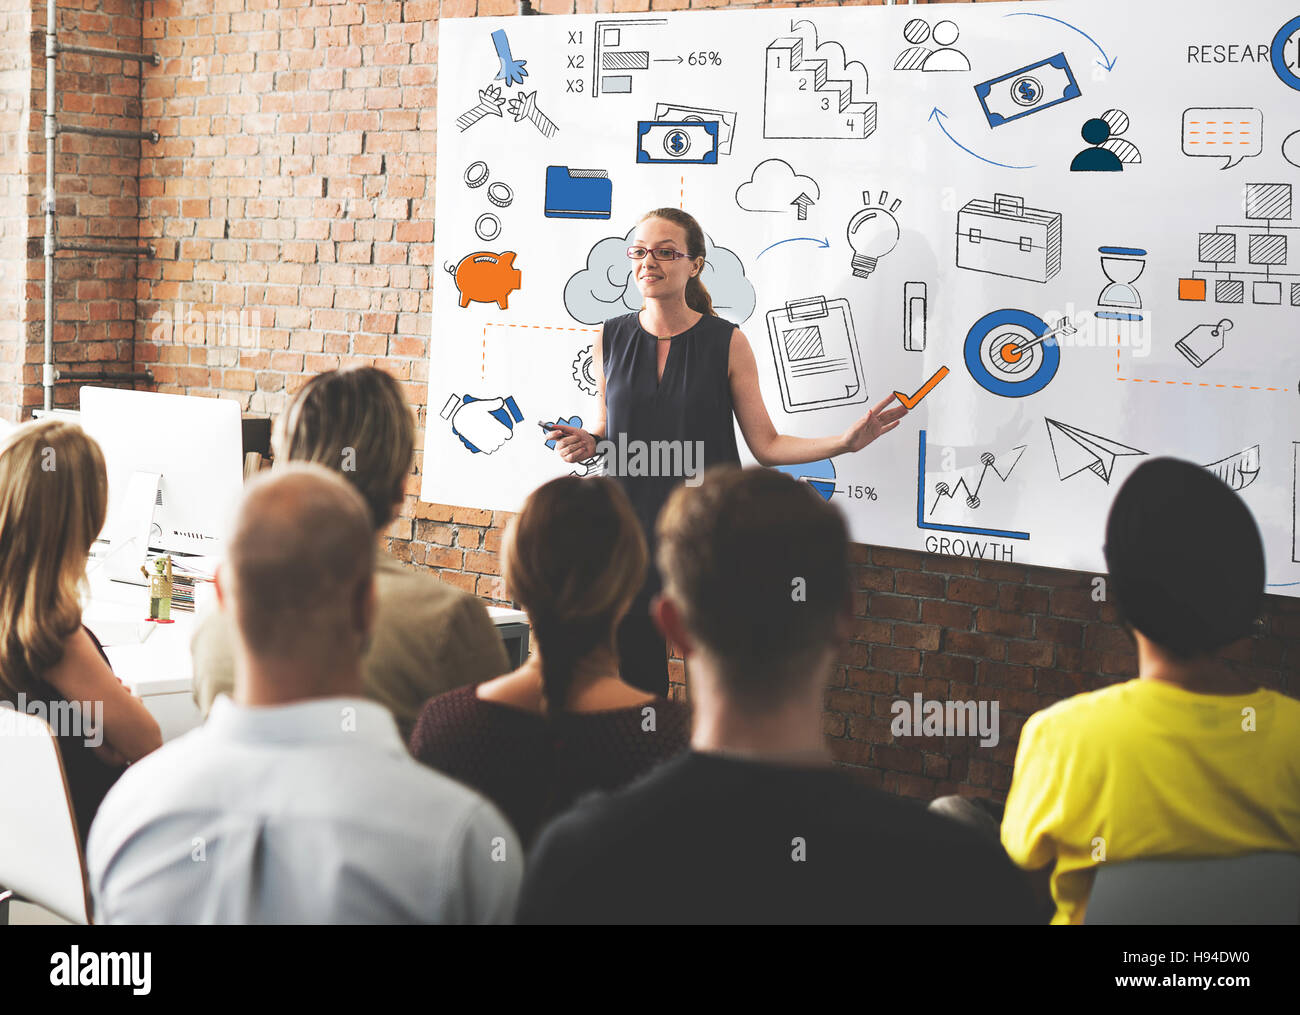 Business Growth Finance Management Concept - Stock Image